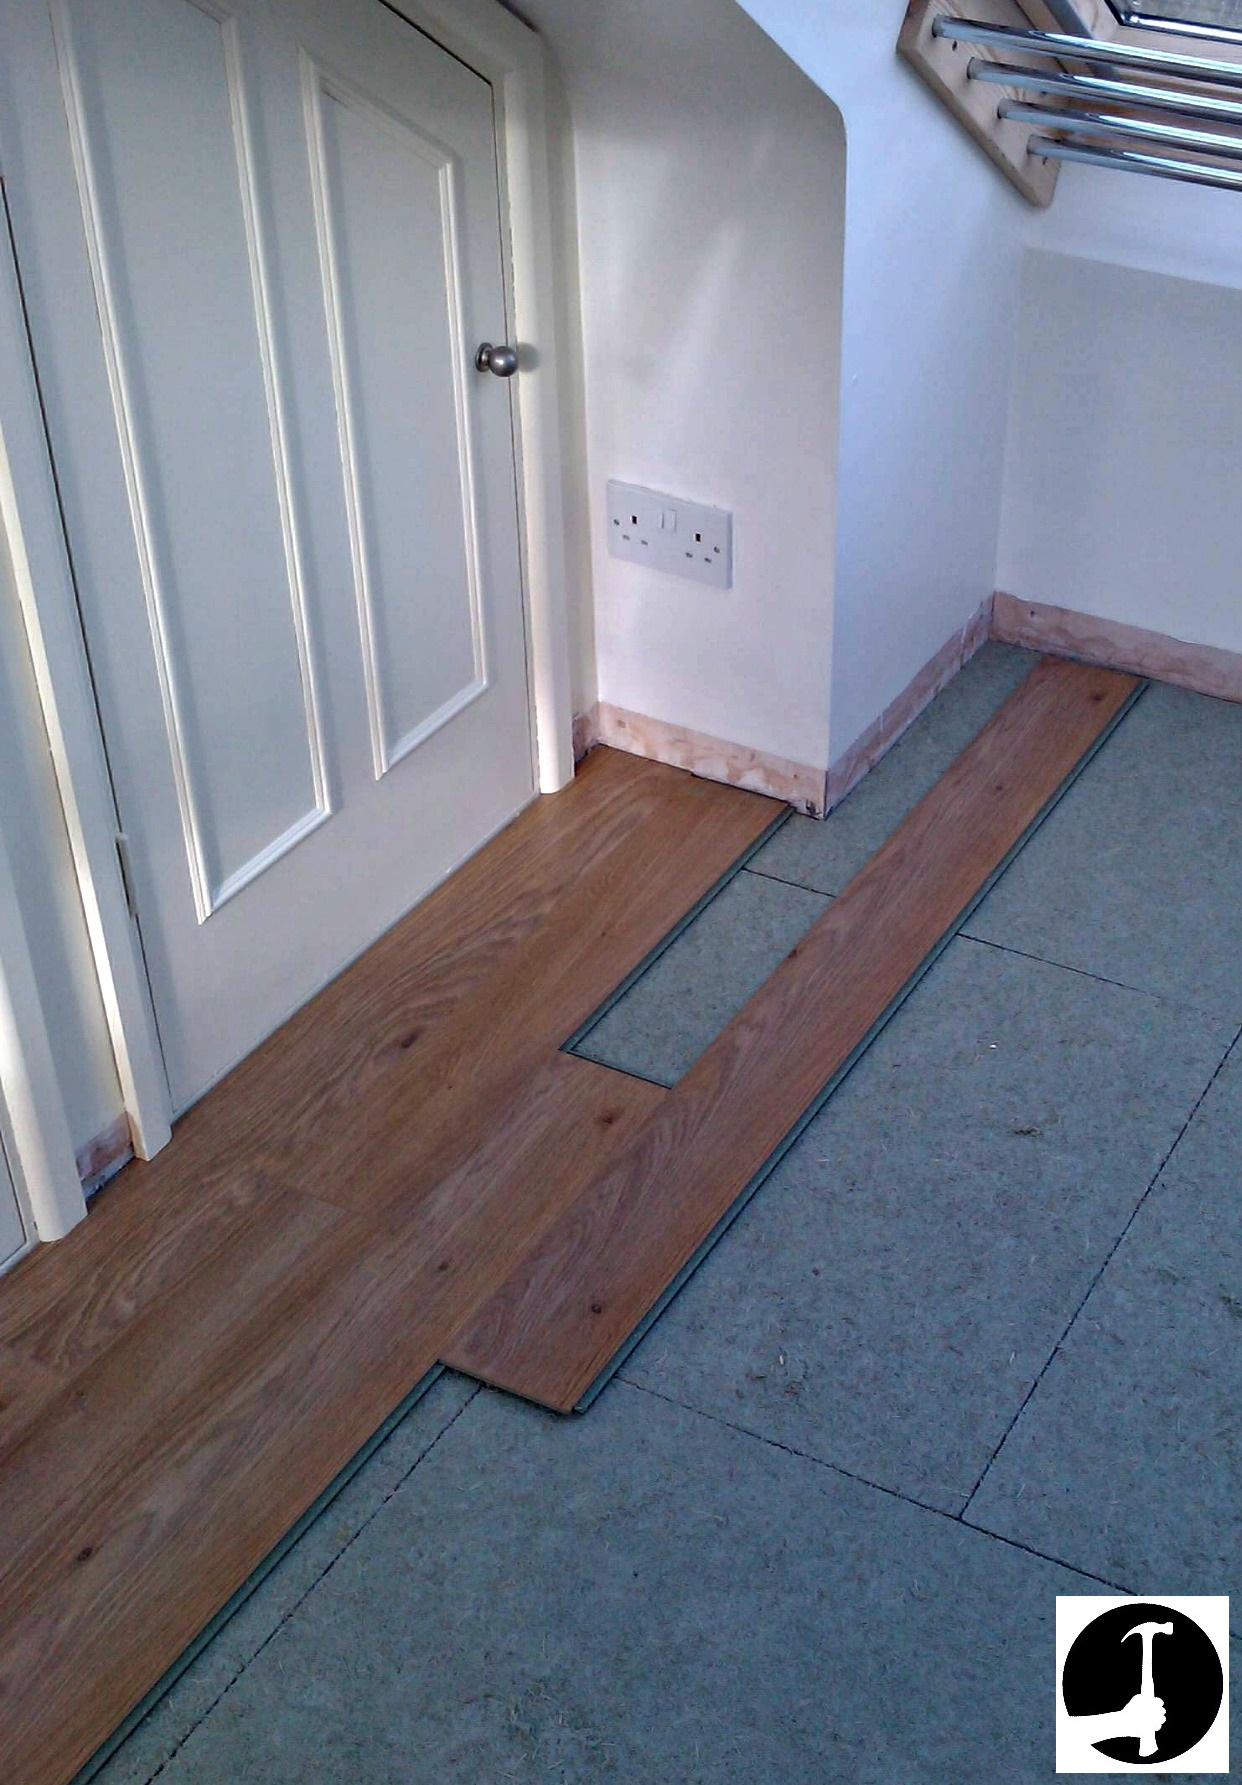 How to install laminate flooring setting out laminate floor boards dailygadgetfo Images